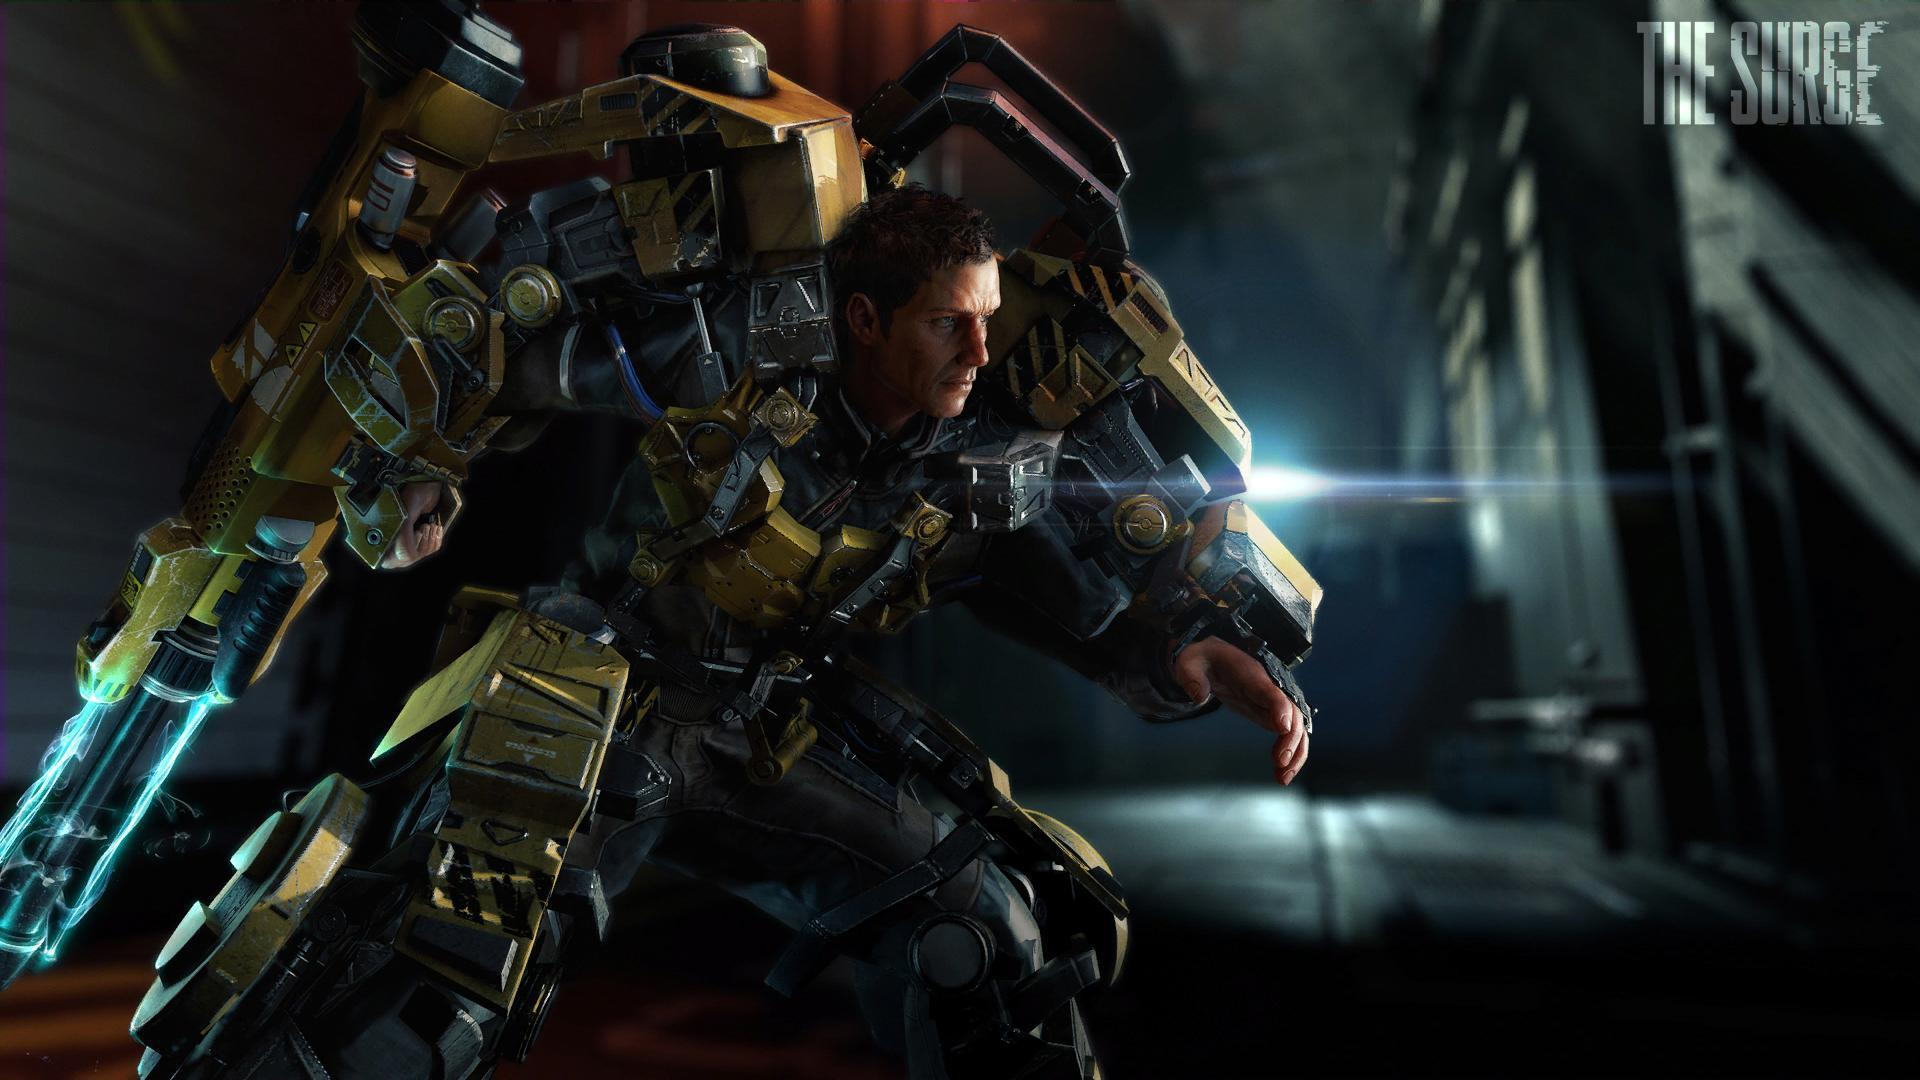 The Surge Wallpapers